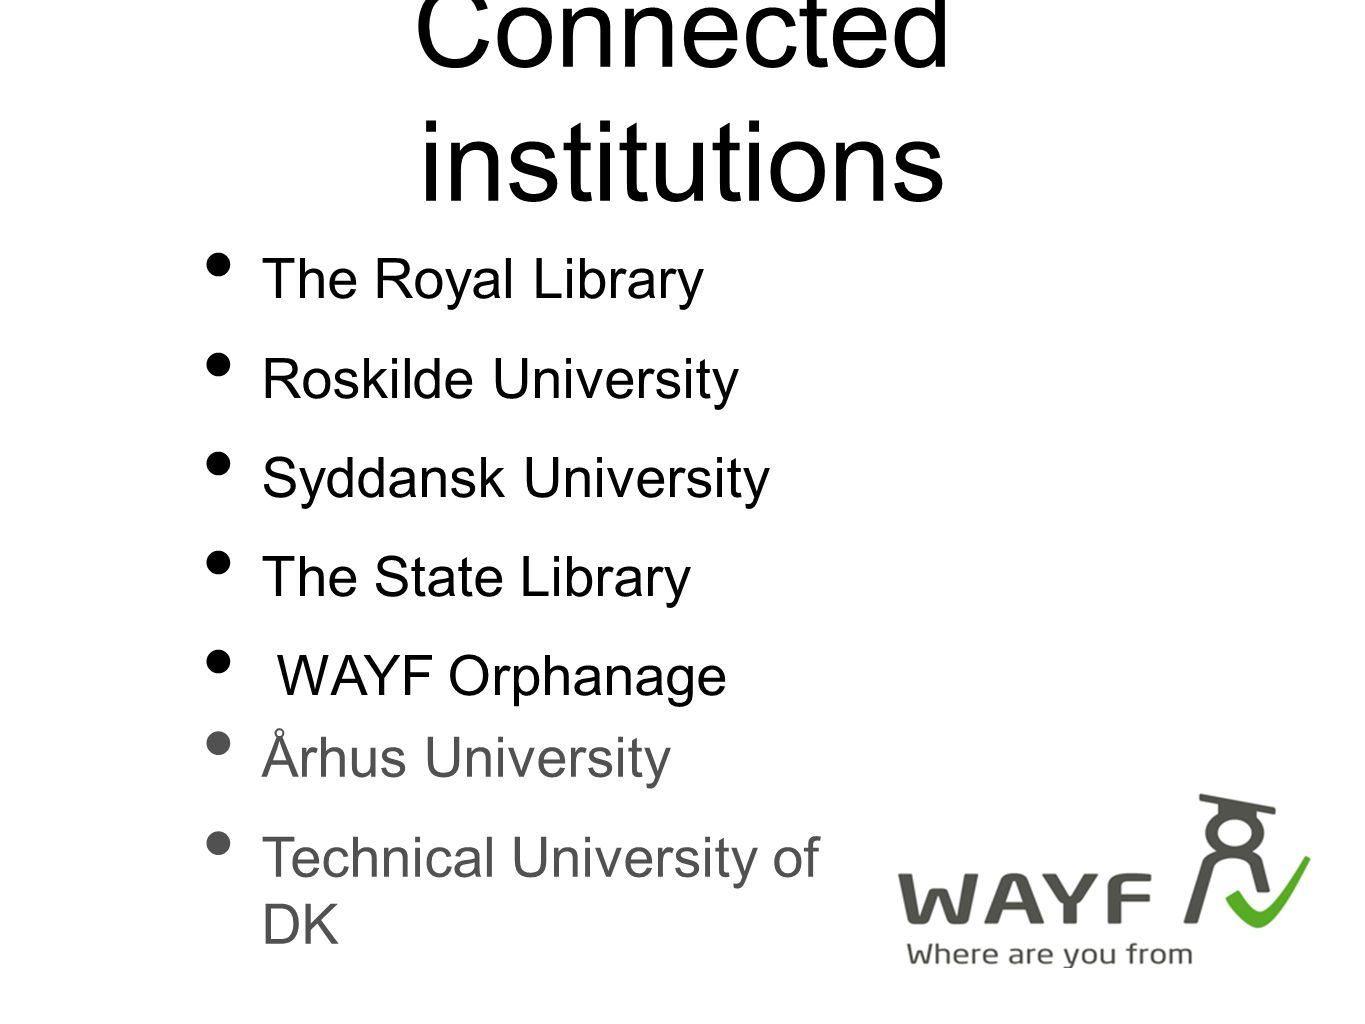 Connected institutions The Royal Library Roskilde University Syddansk University The State Library WAYF Orphanage Århus University Technical University of DK